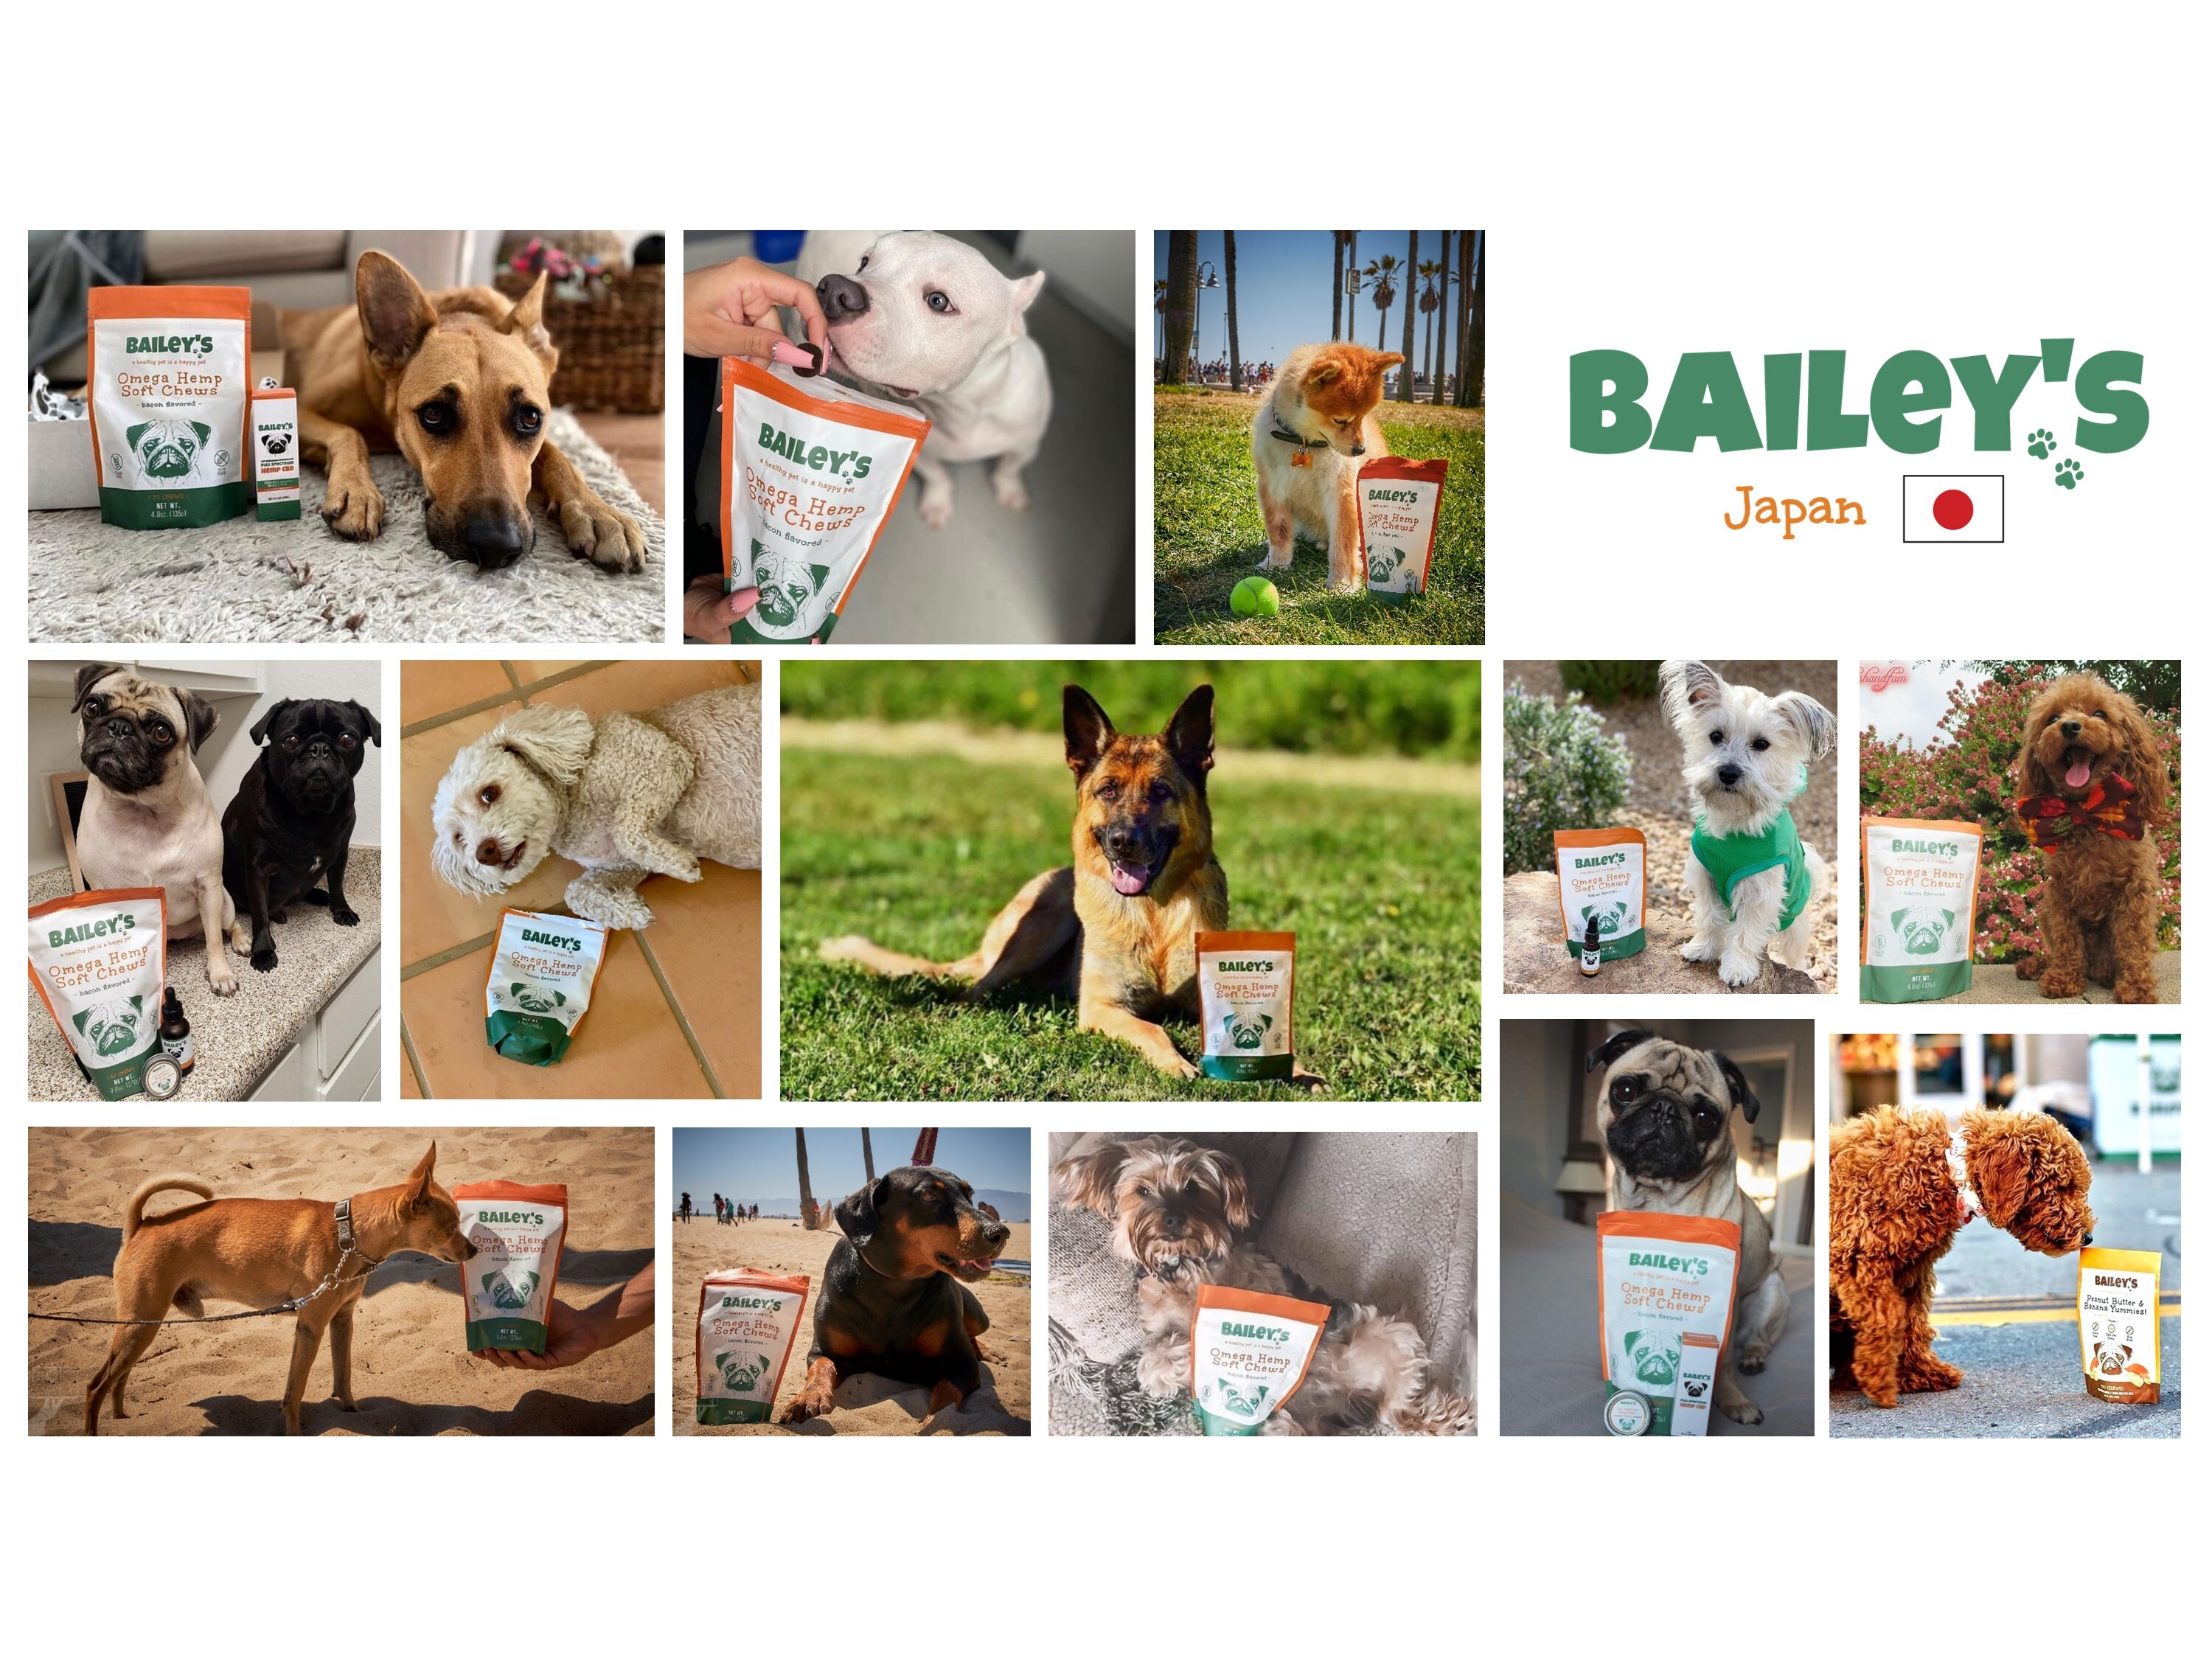 ABOUT BAILEY'S